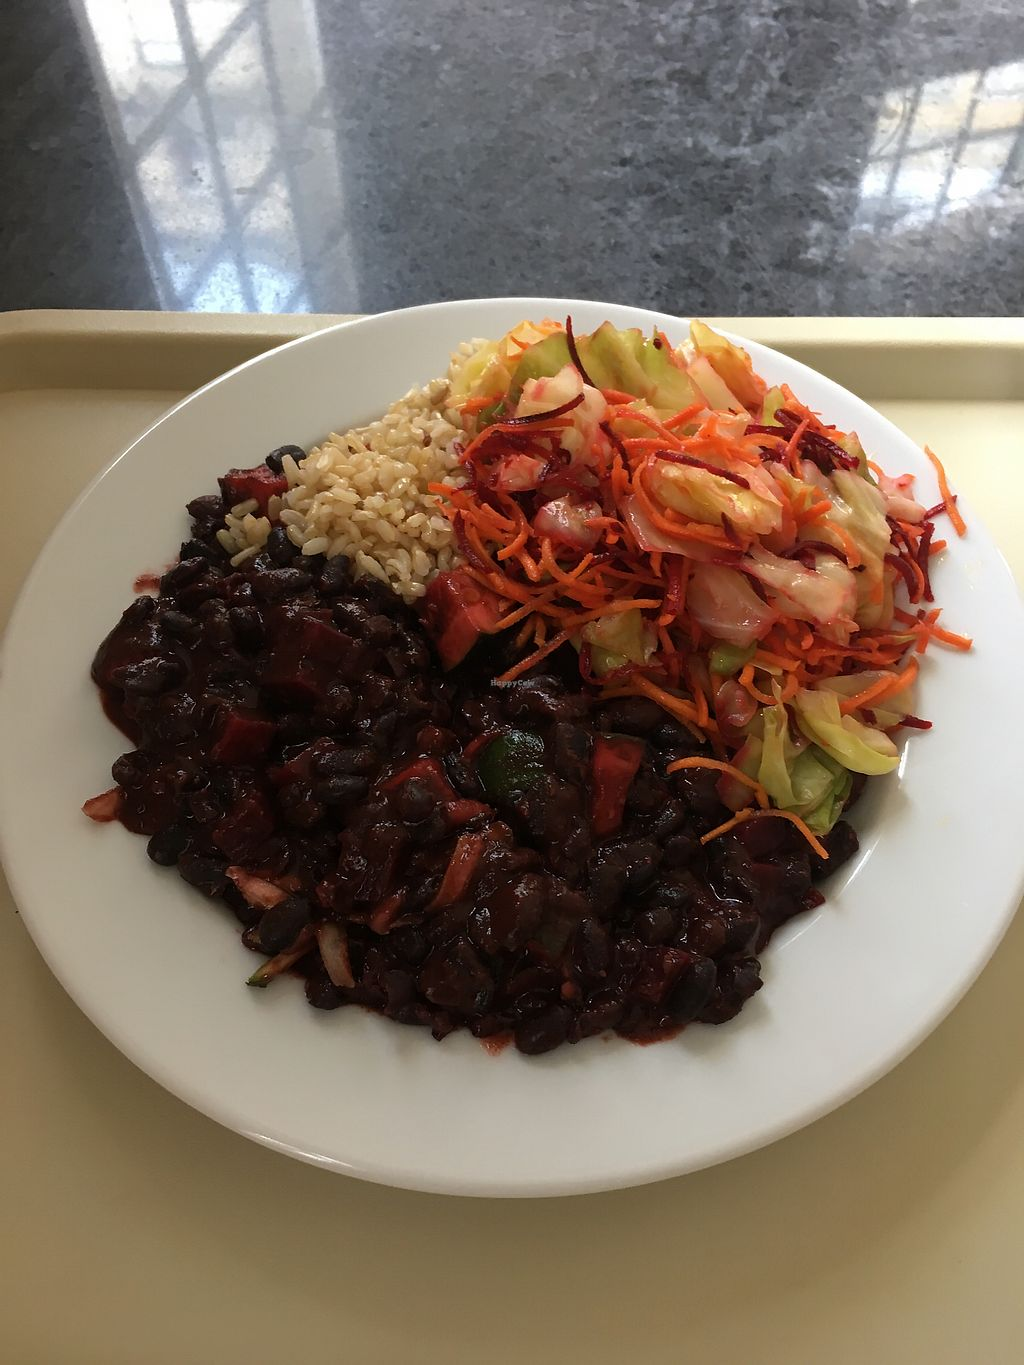 """Photo of Alfarroba  by <a href=""""/members/profile/SaraLou"""">SaraLou</a> <br/>Beans with beetroot  <br/> October 24, 2017  - <a href='/contact/abuse/image/46569/318433'>Report</a>"""